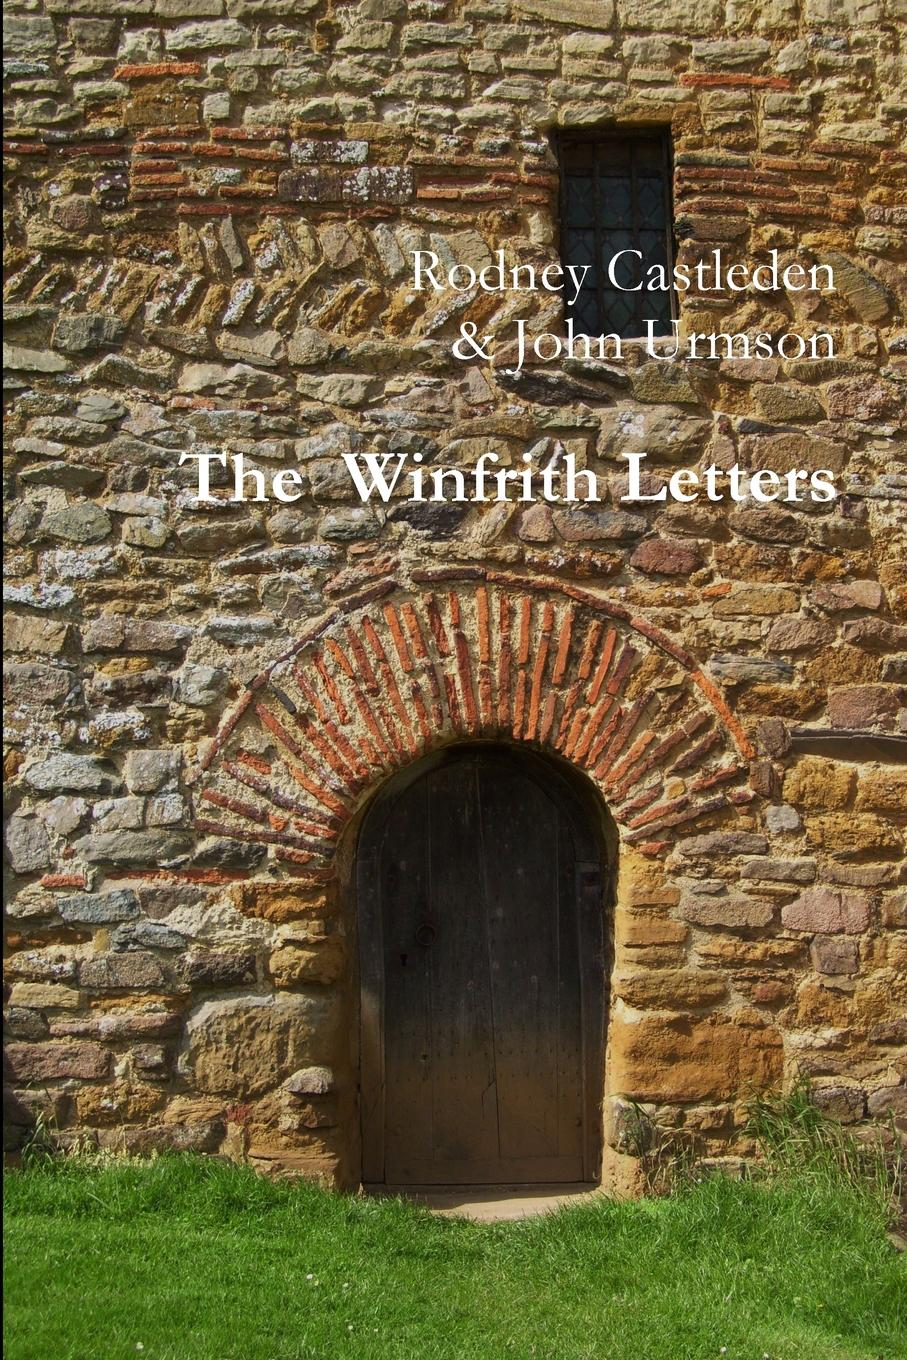 Rodney Castleden The Winfrith Letters heinrich wilsing richard wagner the mastersingers of nurnberg a guide to the music and the drama